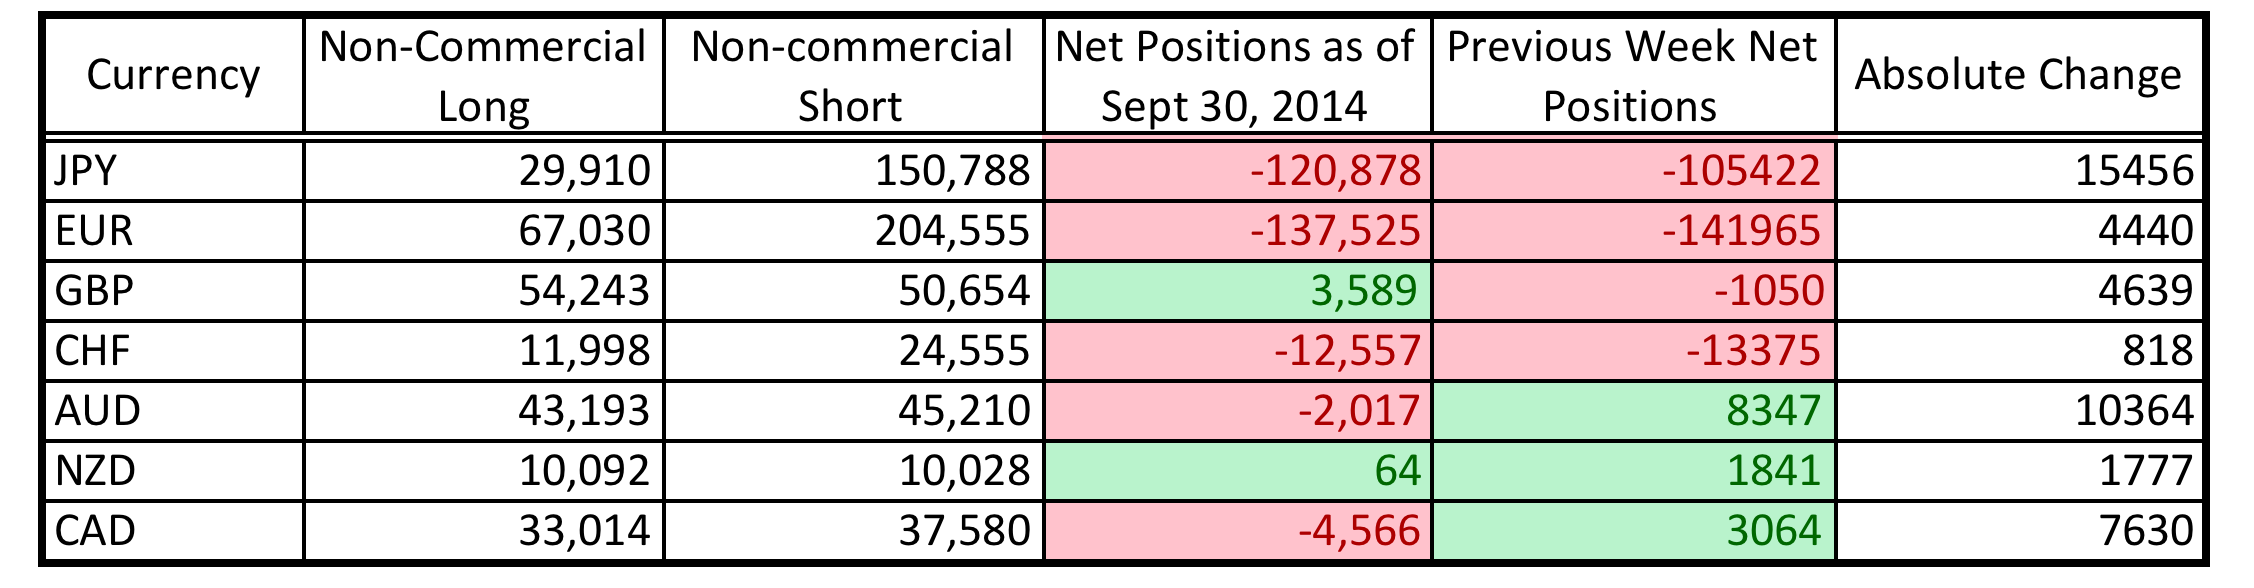 CFTC COT Positioning (Sept 30, 2014)